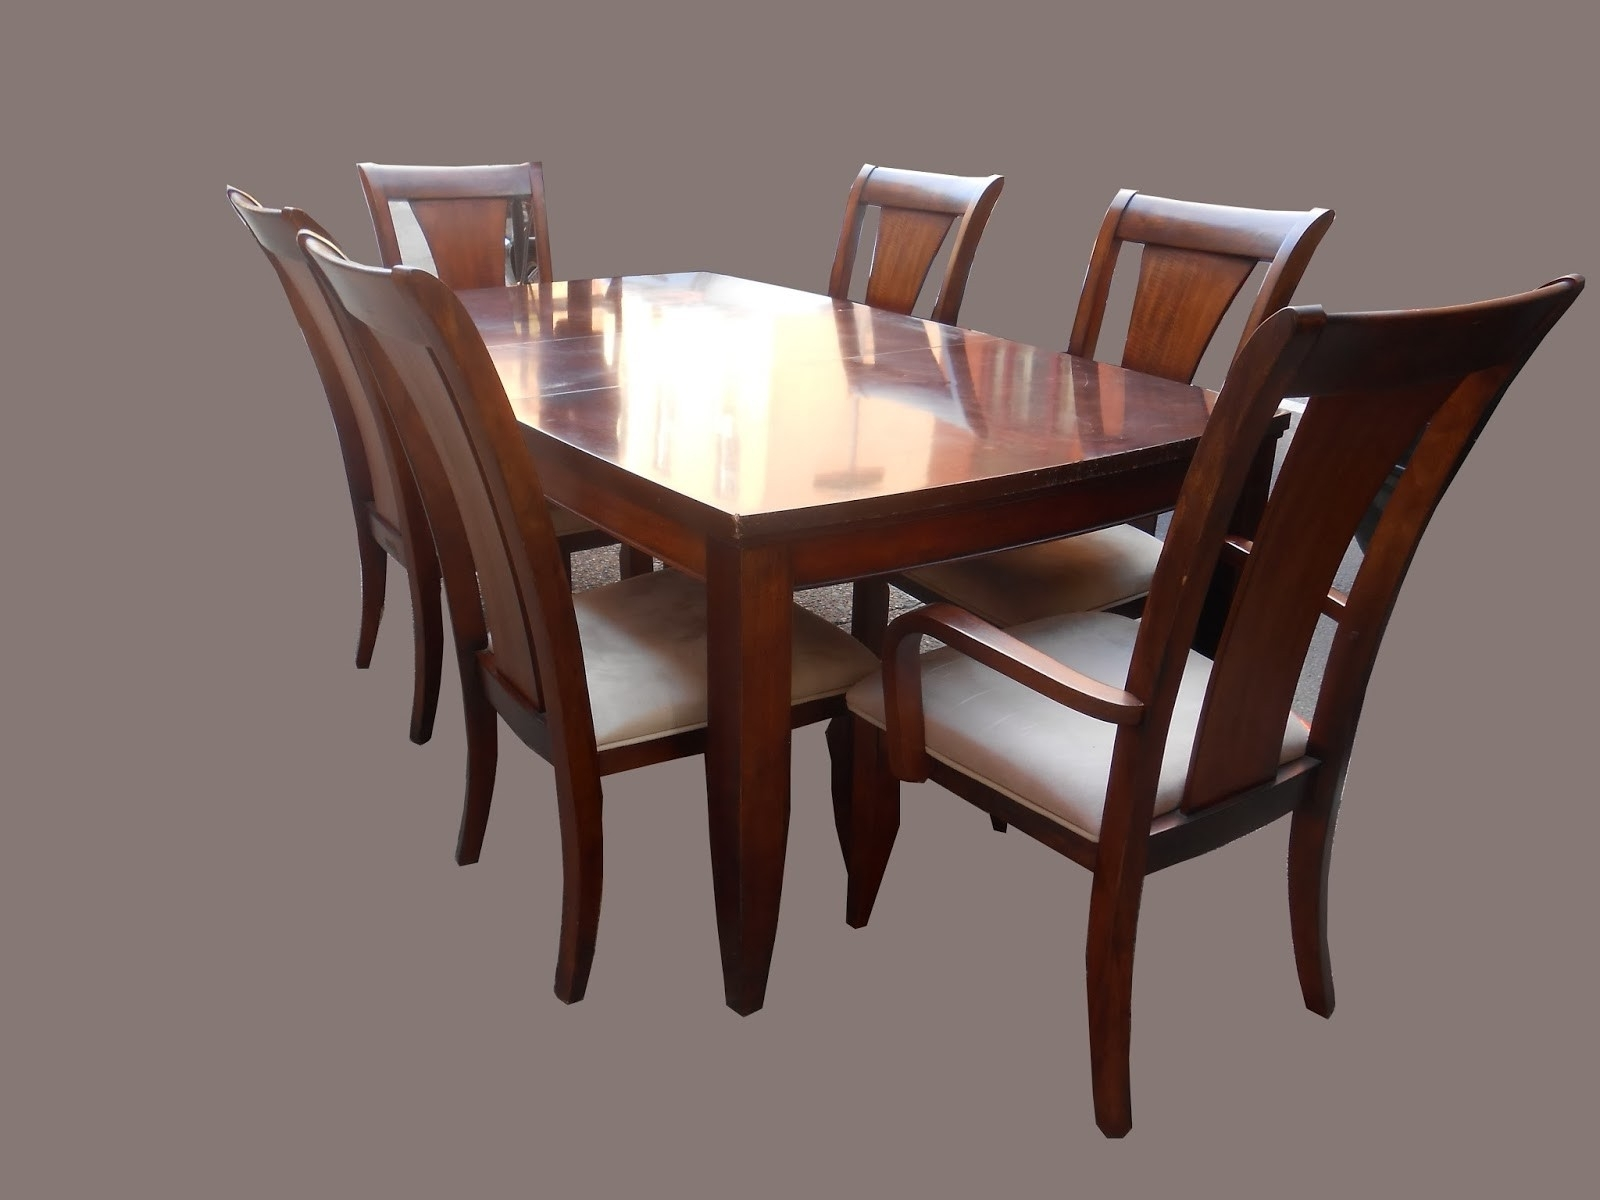 Preferred Dining Table Sets With 6 Chairs Awesome Uhuru Furniture Within Mahogany Dining Table Sets (View 25 of 25)